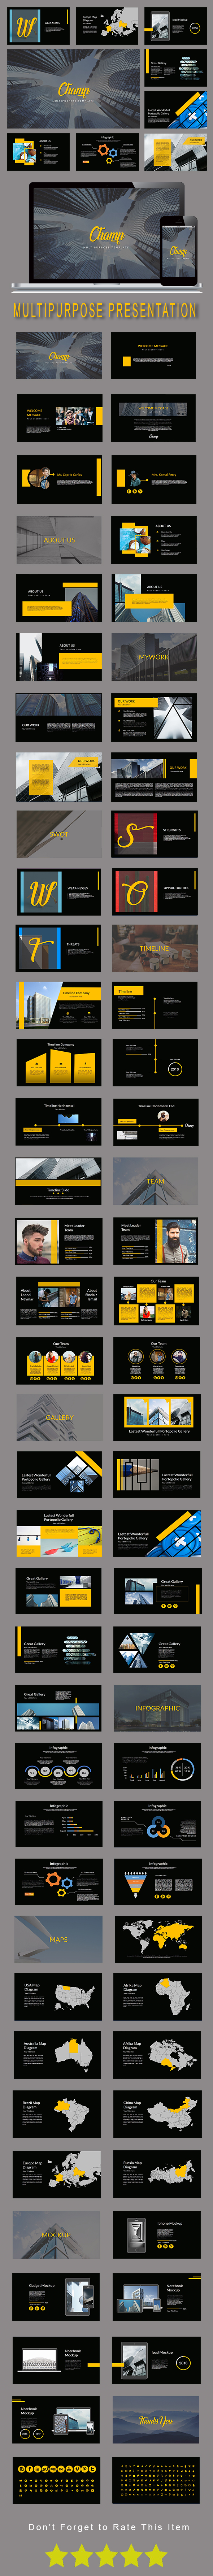 Champ Multipurpose Powerpoint Template (PowerPoint Templates)